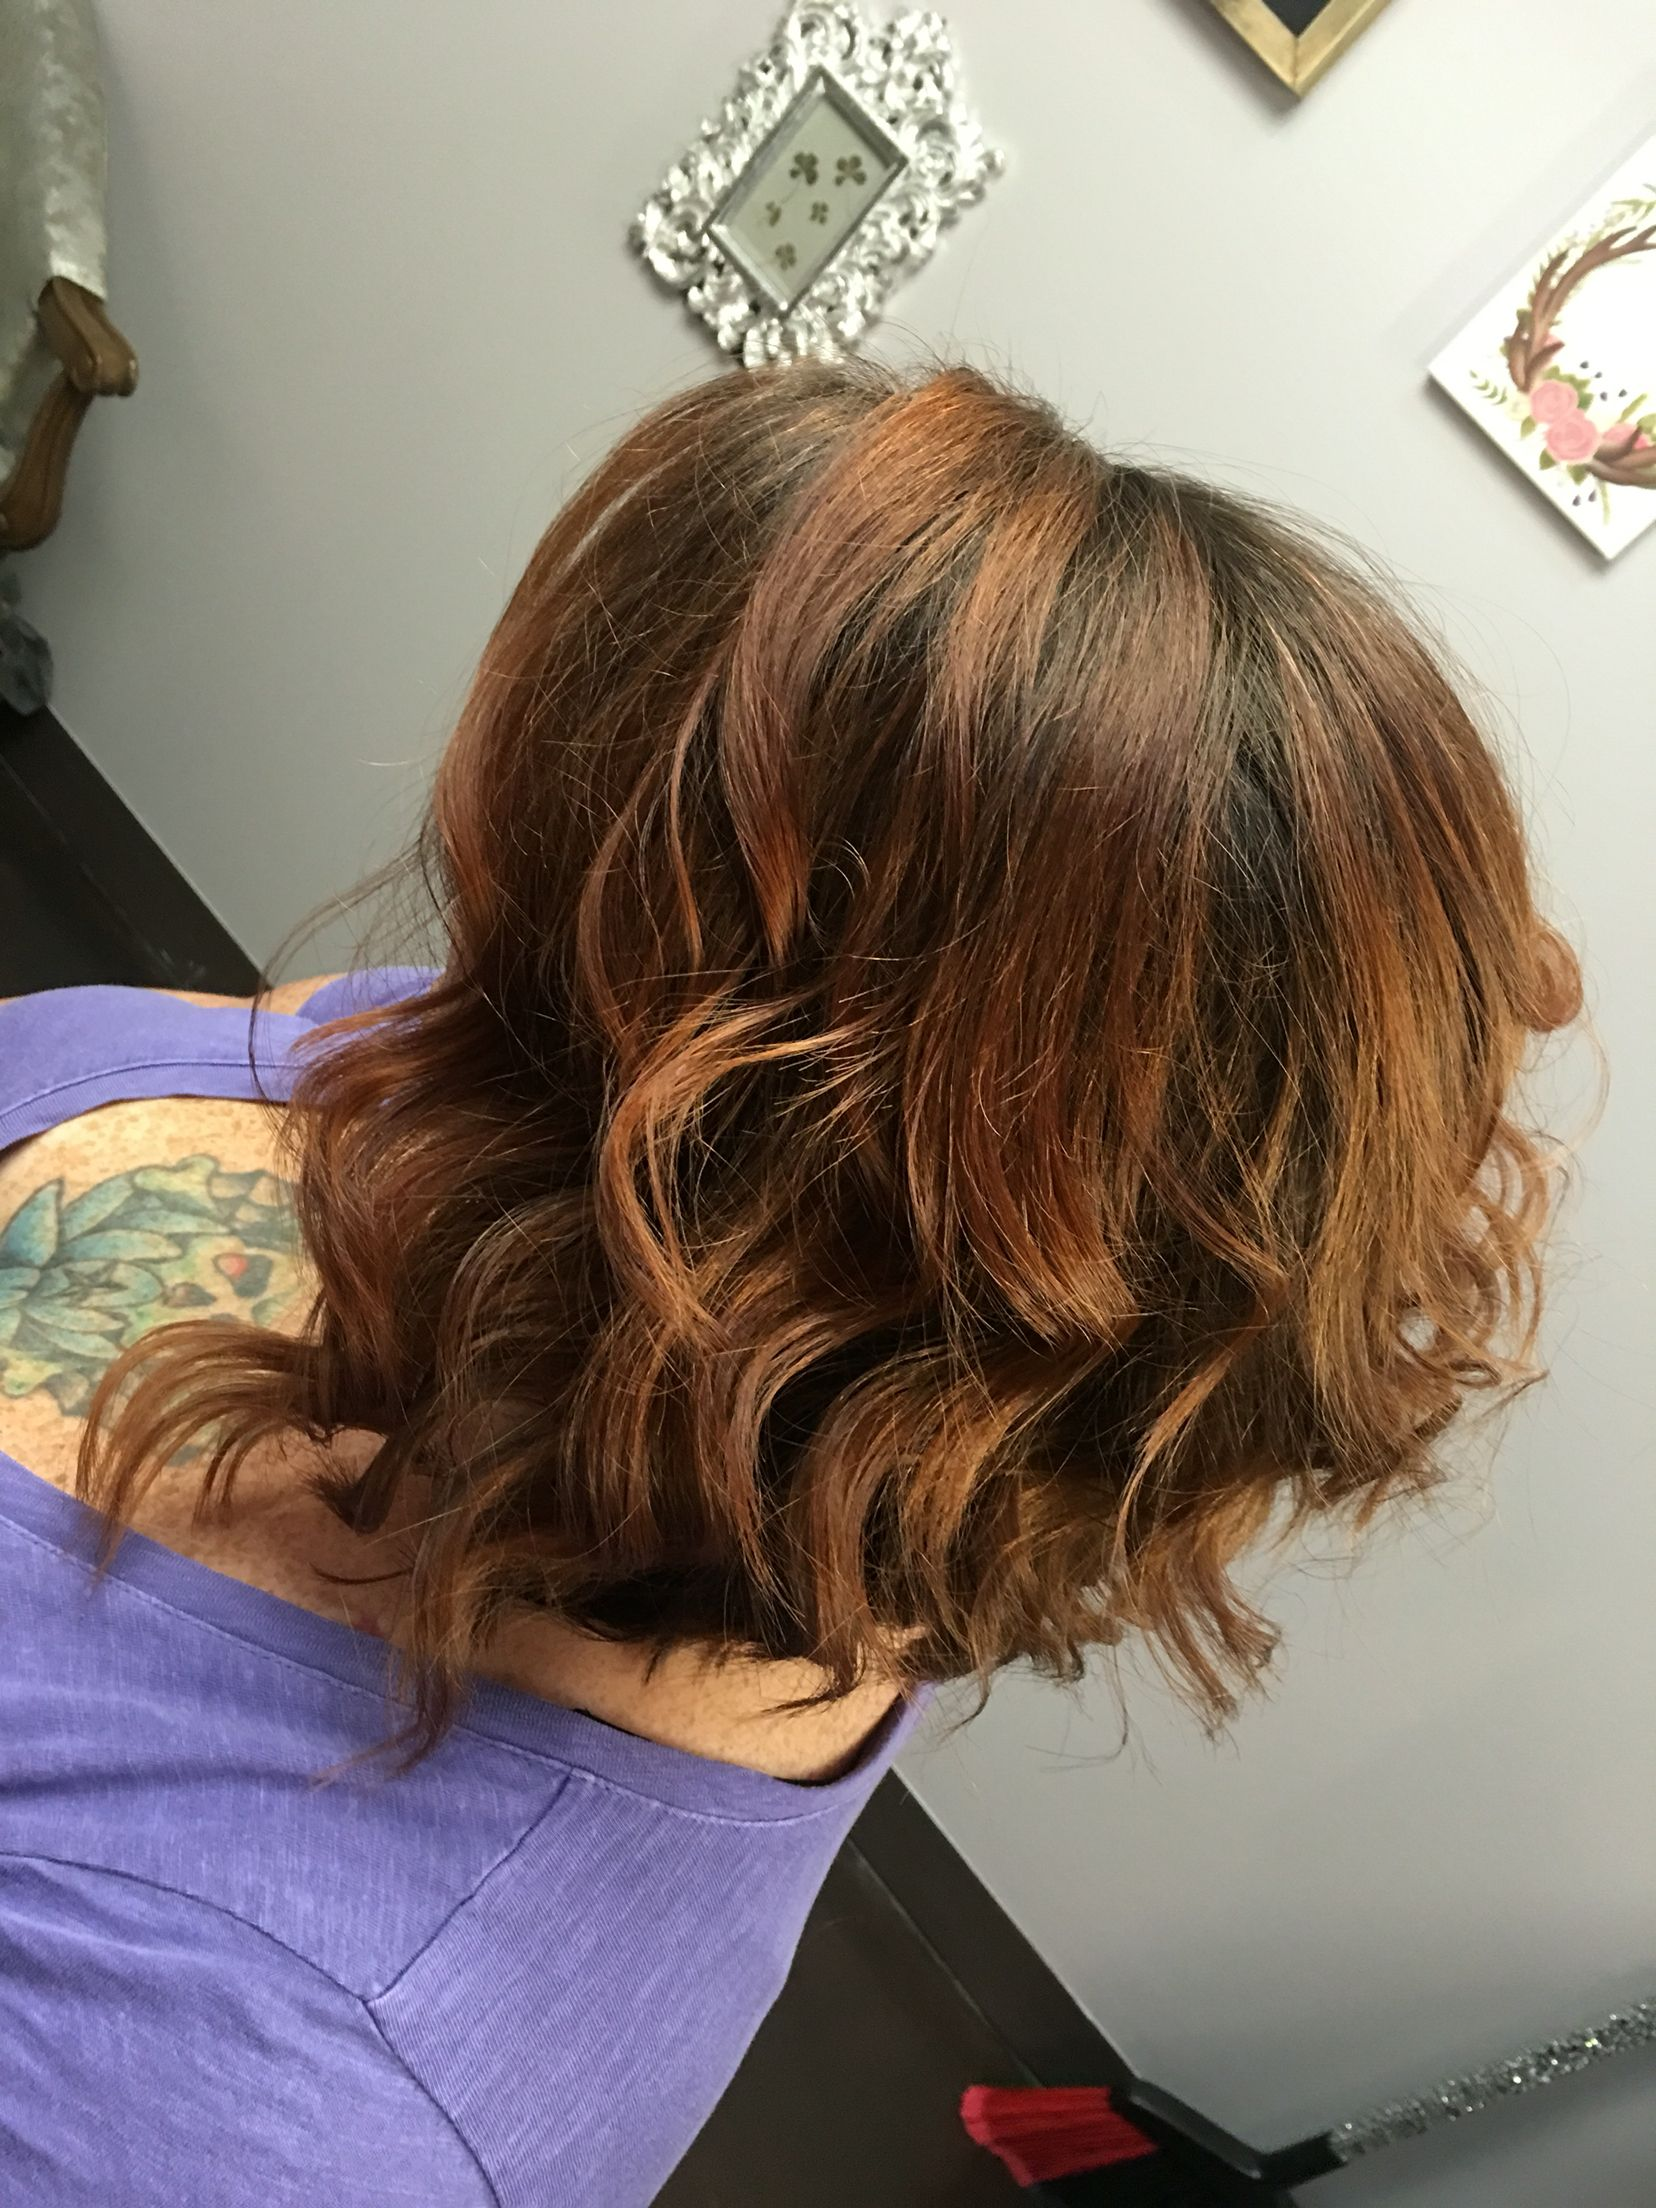 Heavy Highlite With A Dark Kaboo I Want This Color Hair Its Coming Soon